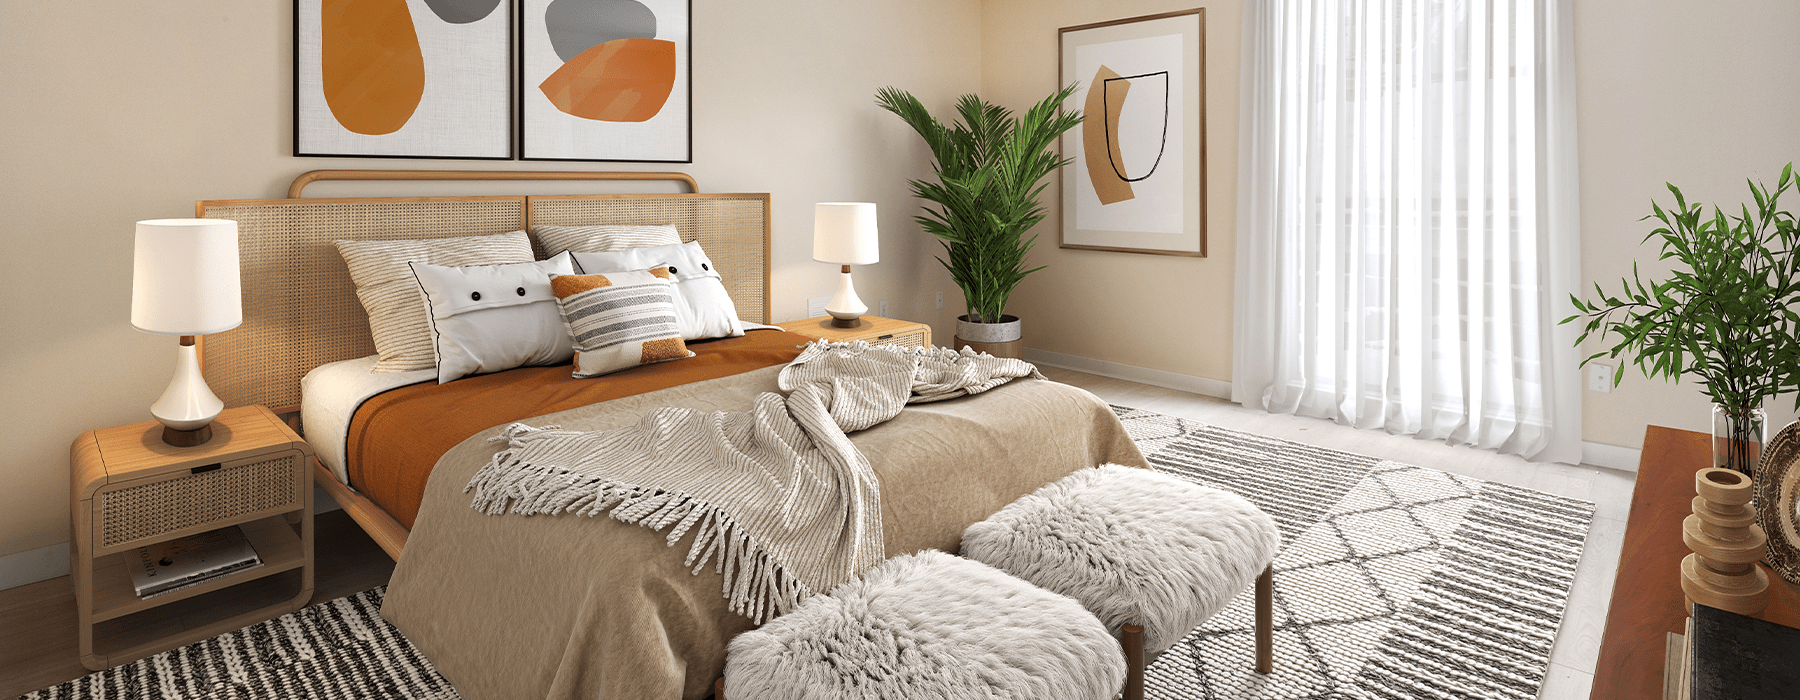 spacious bedroom with natural lighting from large windows and open spaces around space for bed